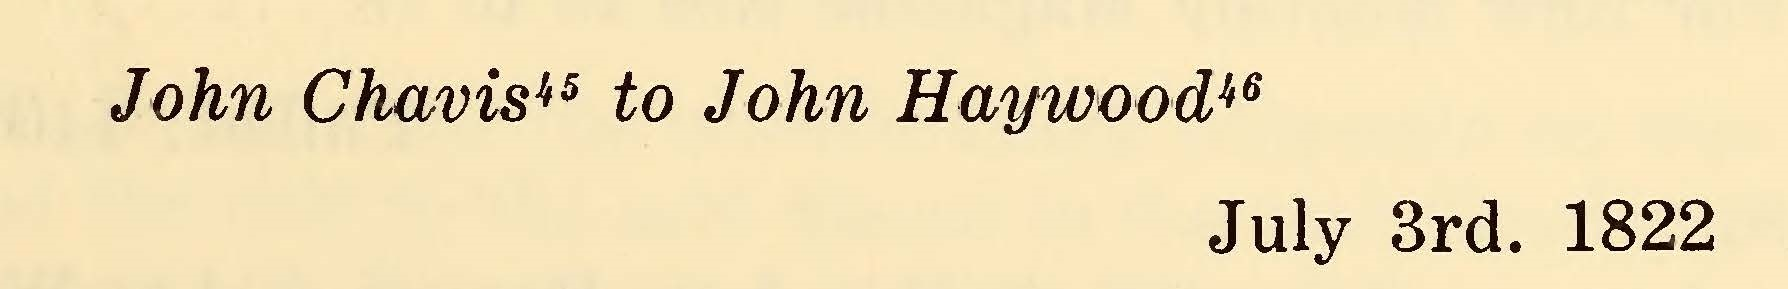 Chavis, John, July 3, 1822 Letter to John Haywood Title Page.jpg